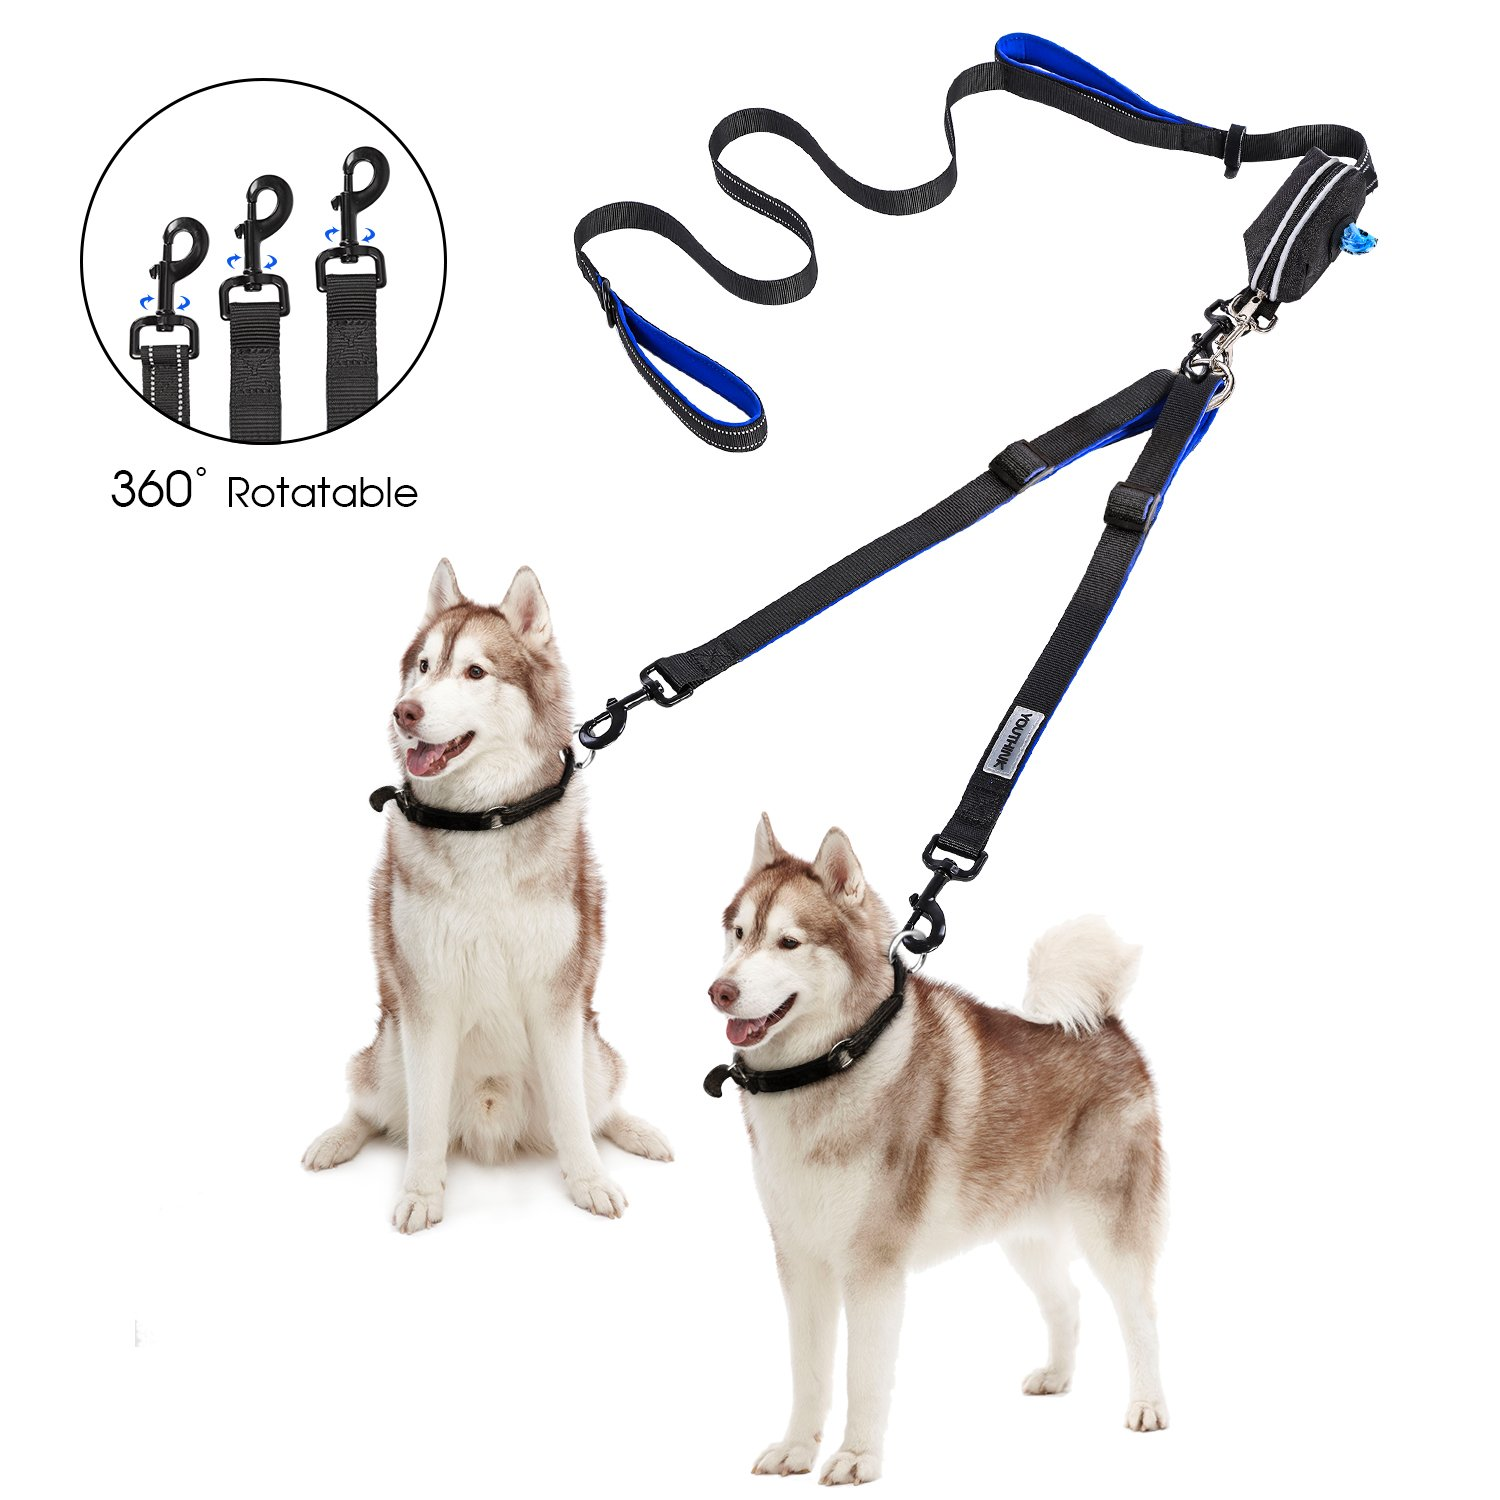 YOUTHINK Double Dog Leash, No Tangle Dog Walking leash for 2 Dogs up to 180lbs, Comfortable Adjustable Dual Padded Handles, Bonus Pet Waste Bag